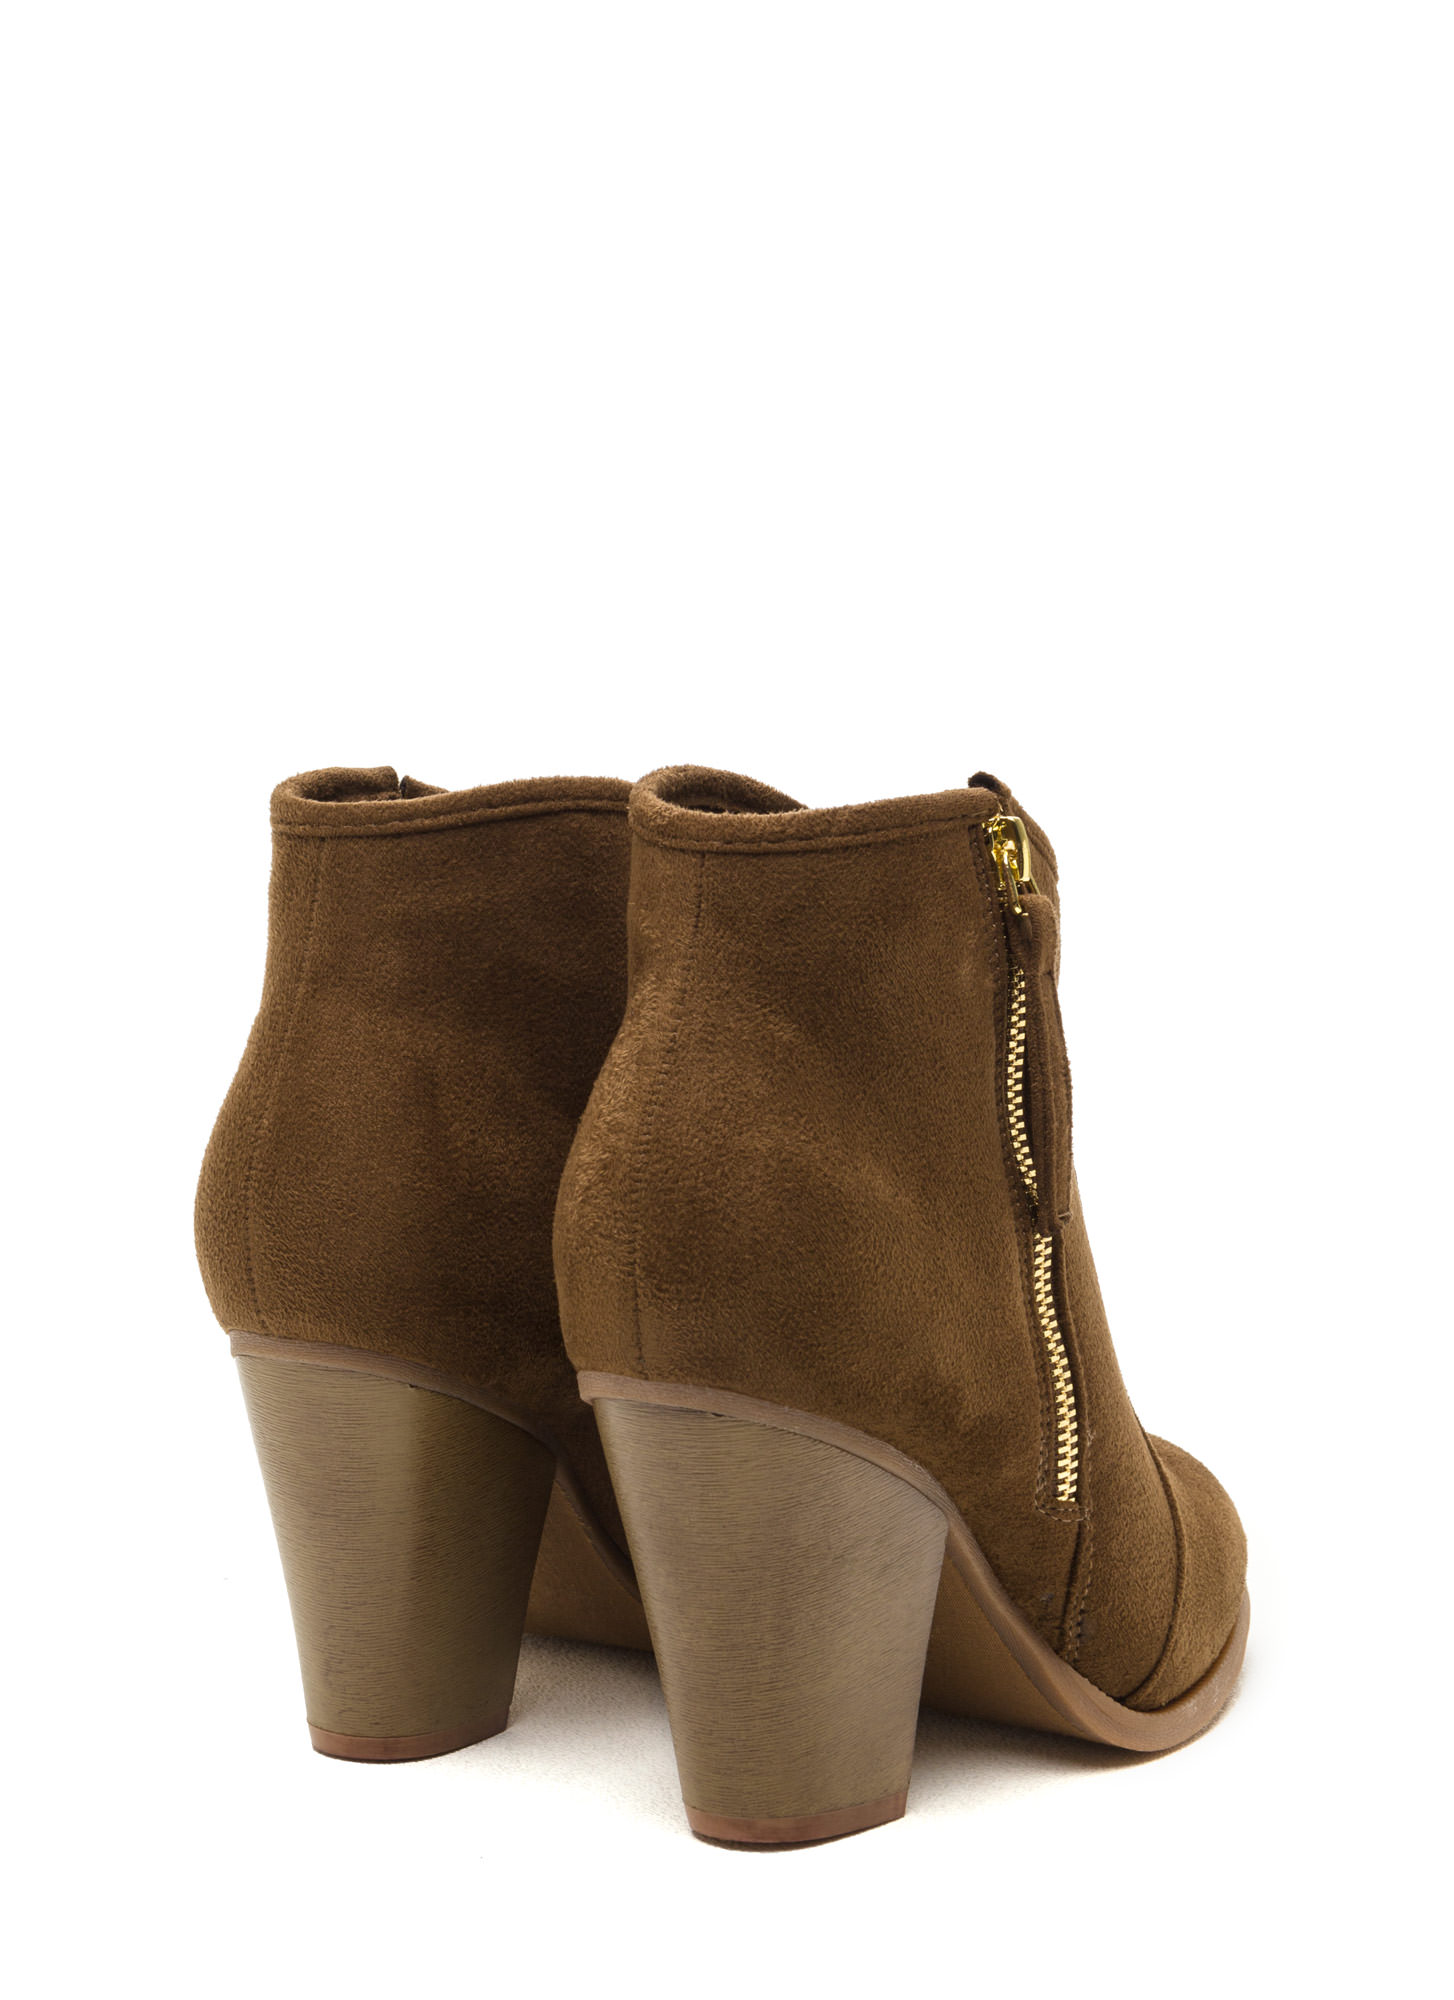 Zipped To The Top Chunky Booties OLIVE